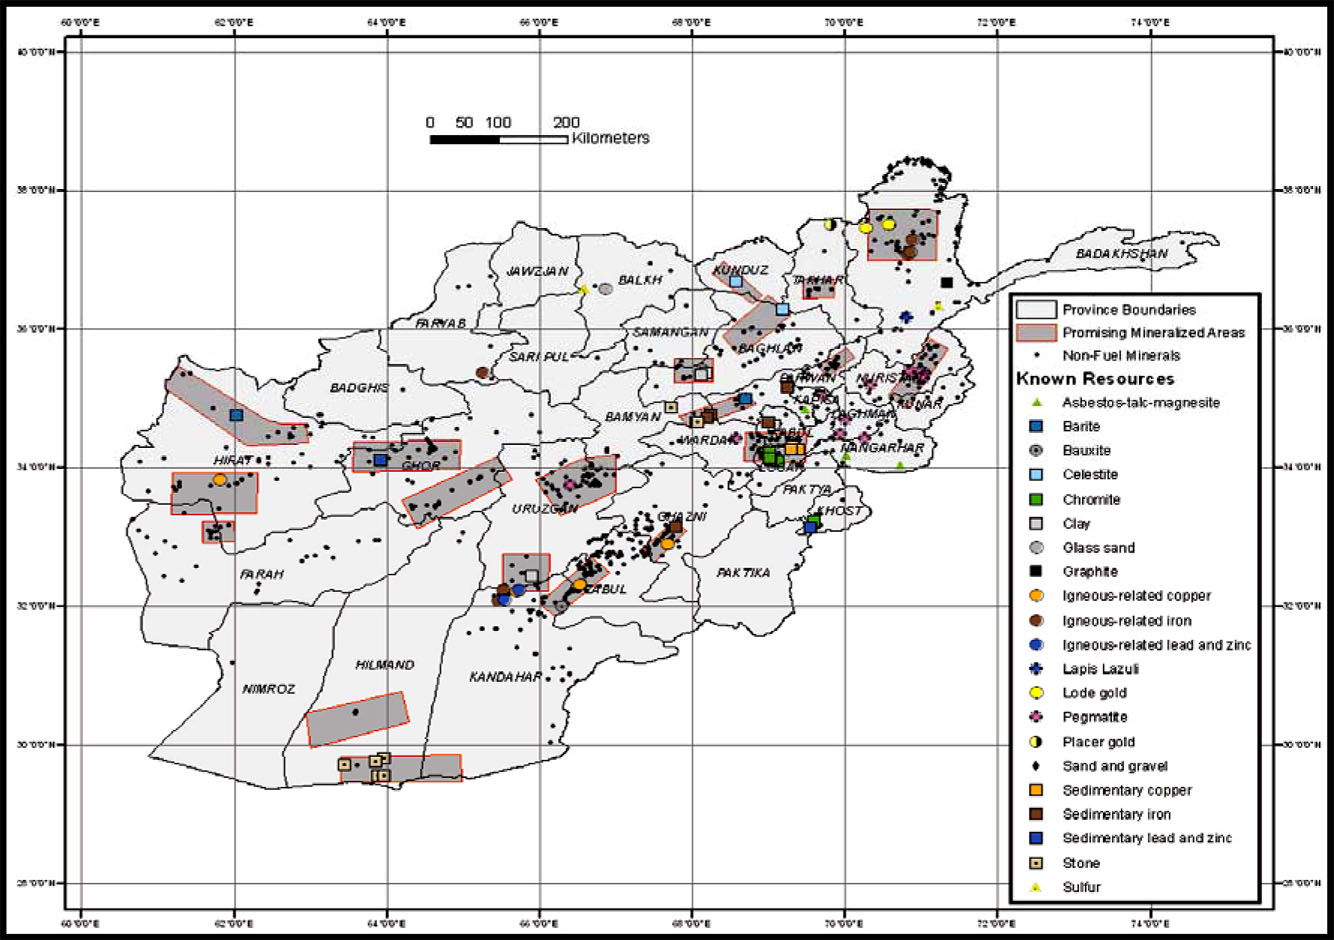 Afghanistan May Have 1 Trillion Dollar Minerals Potential